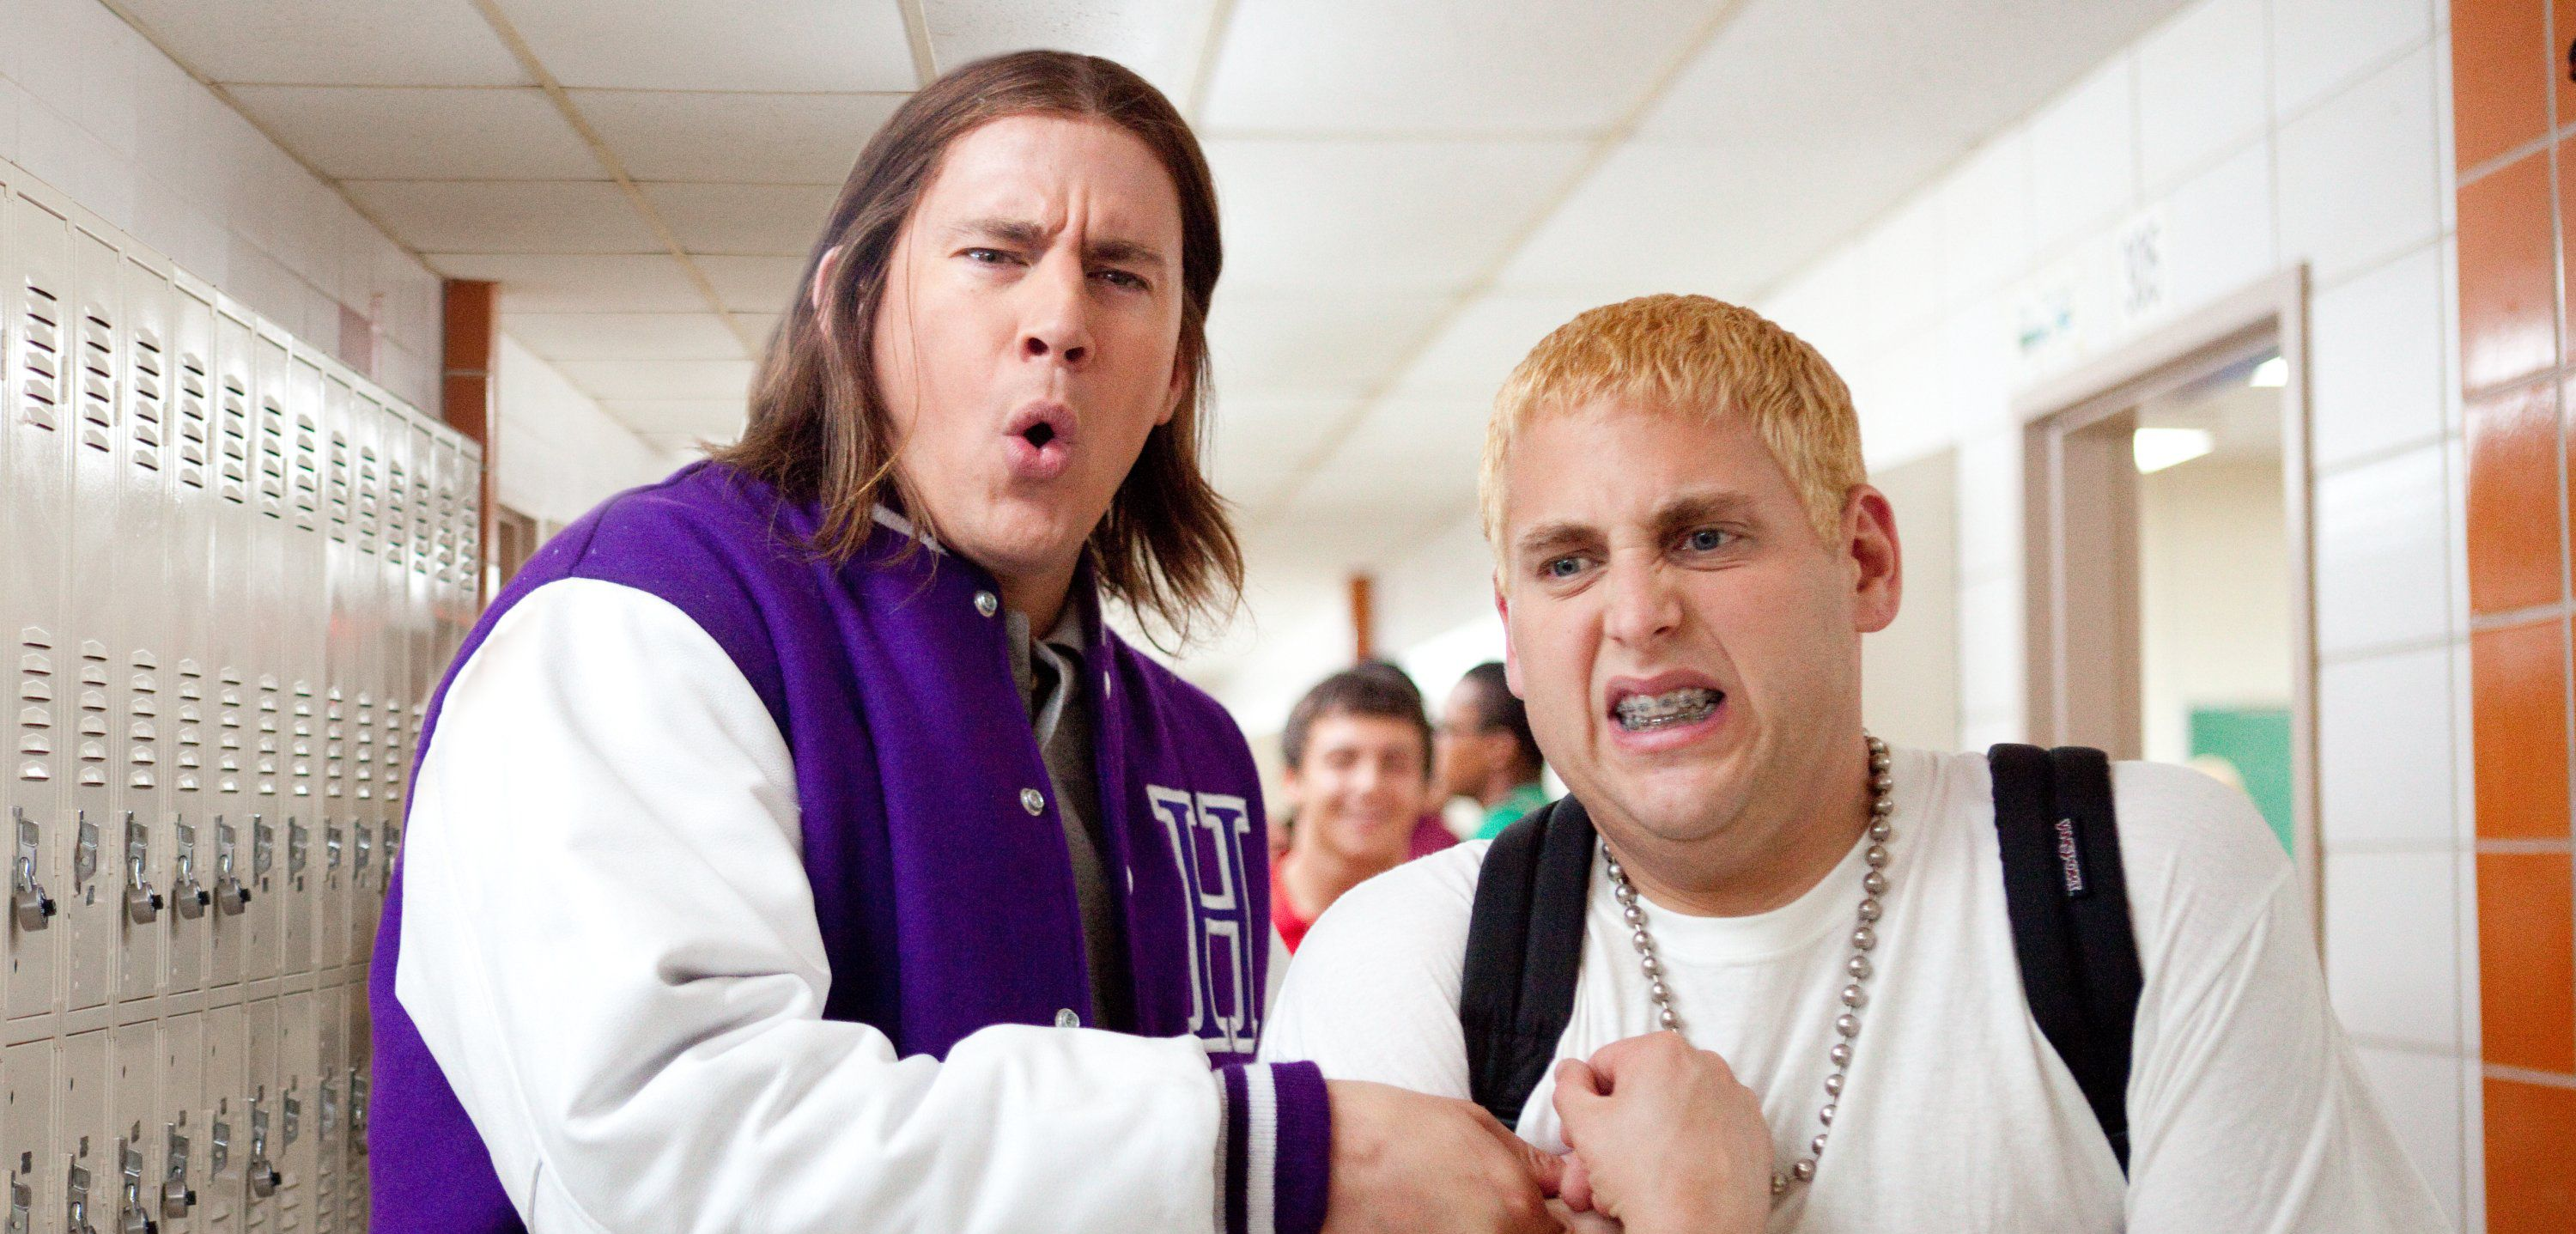 An image from 21 Jump Street